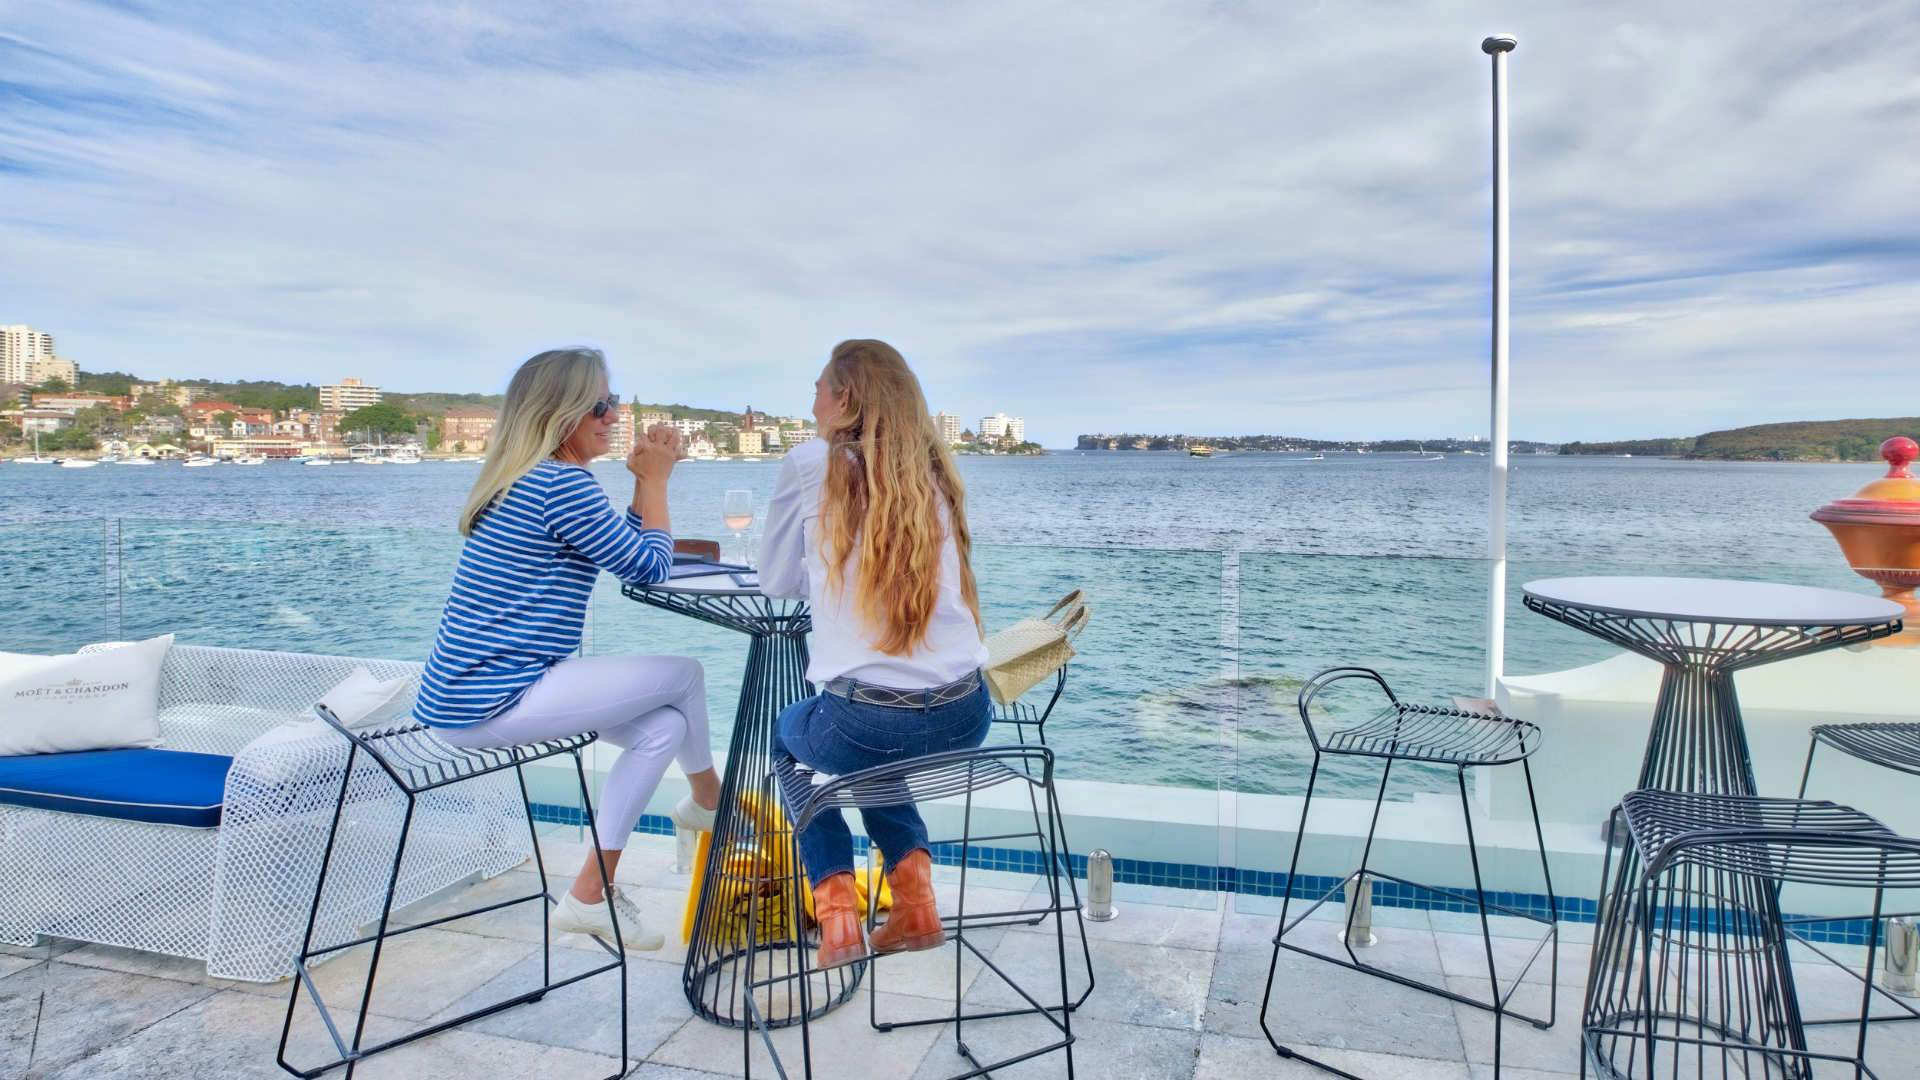 We're Giving Away Long Lunches at These Waterside Sydney